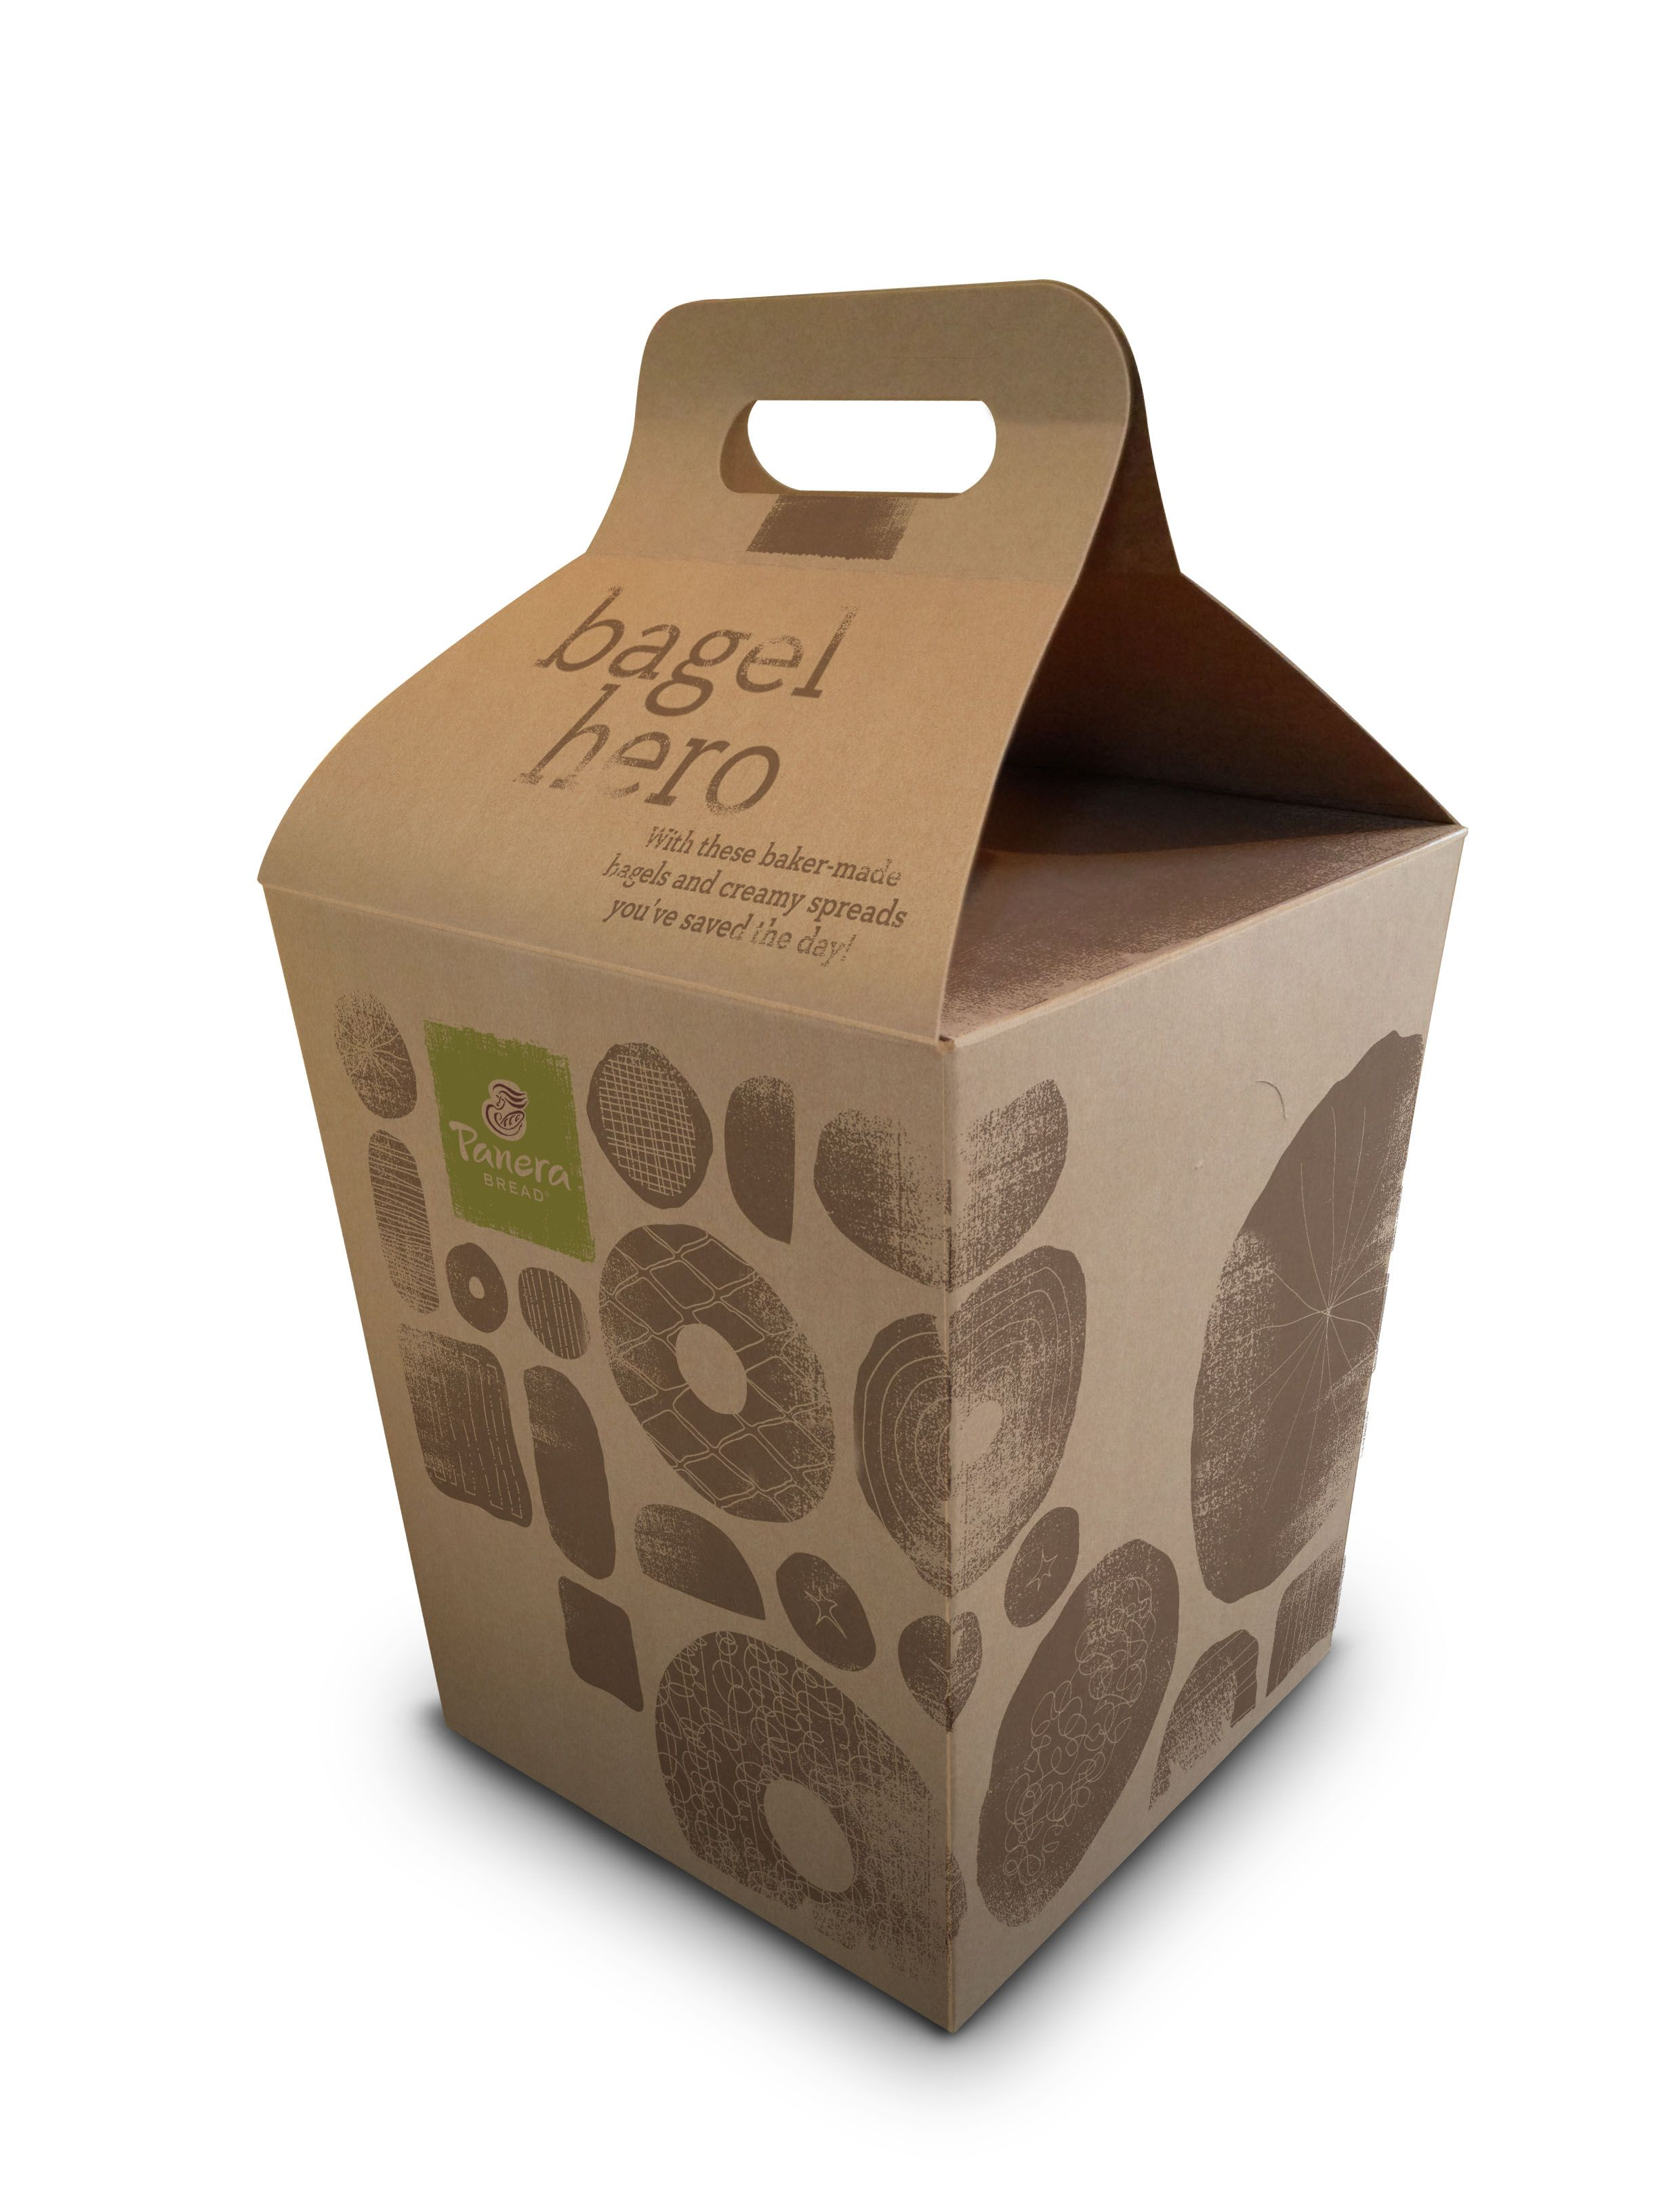 Panera Bread Coffee Box Adorable Mitre Agency  Panera Bread  Packaging  Bagel Pack  Mitre Design Inspiration